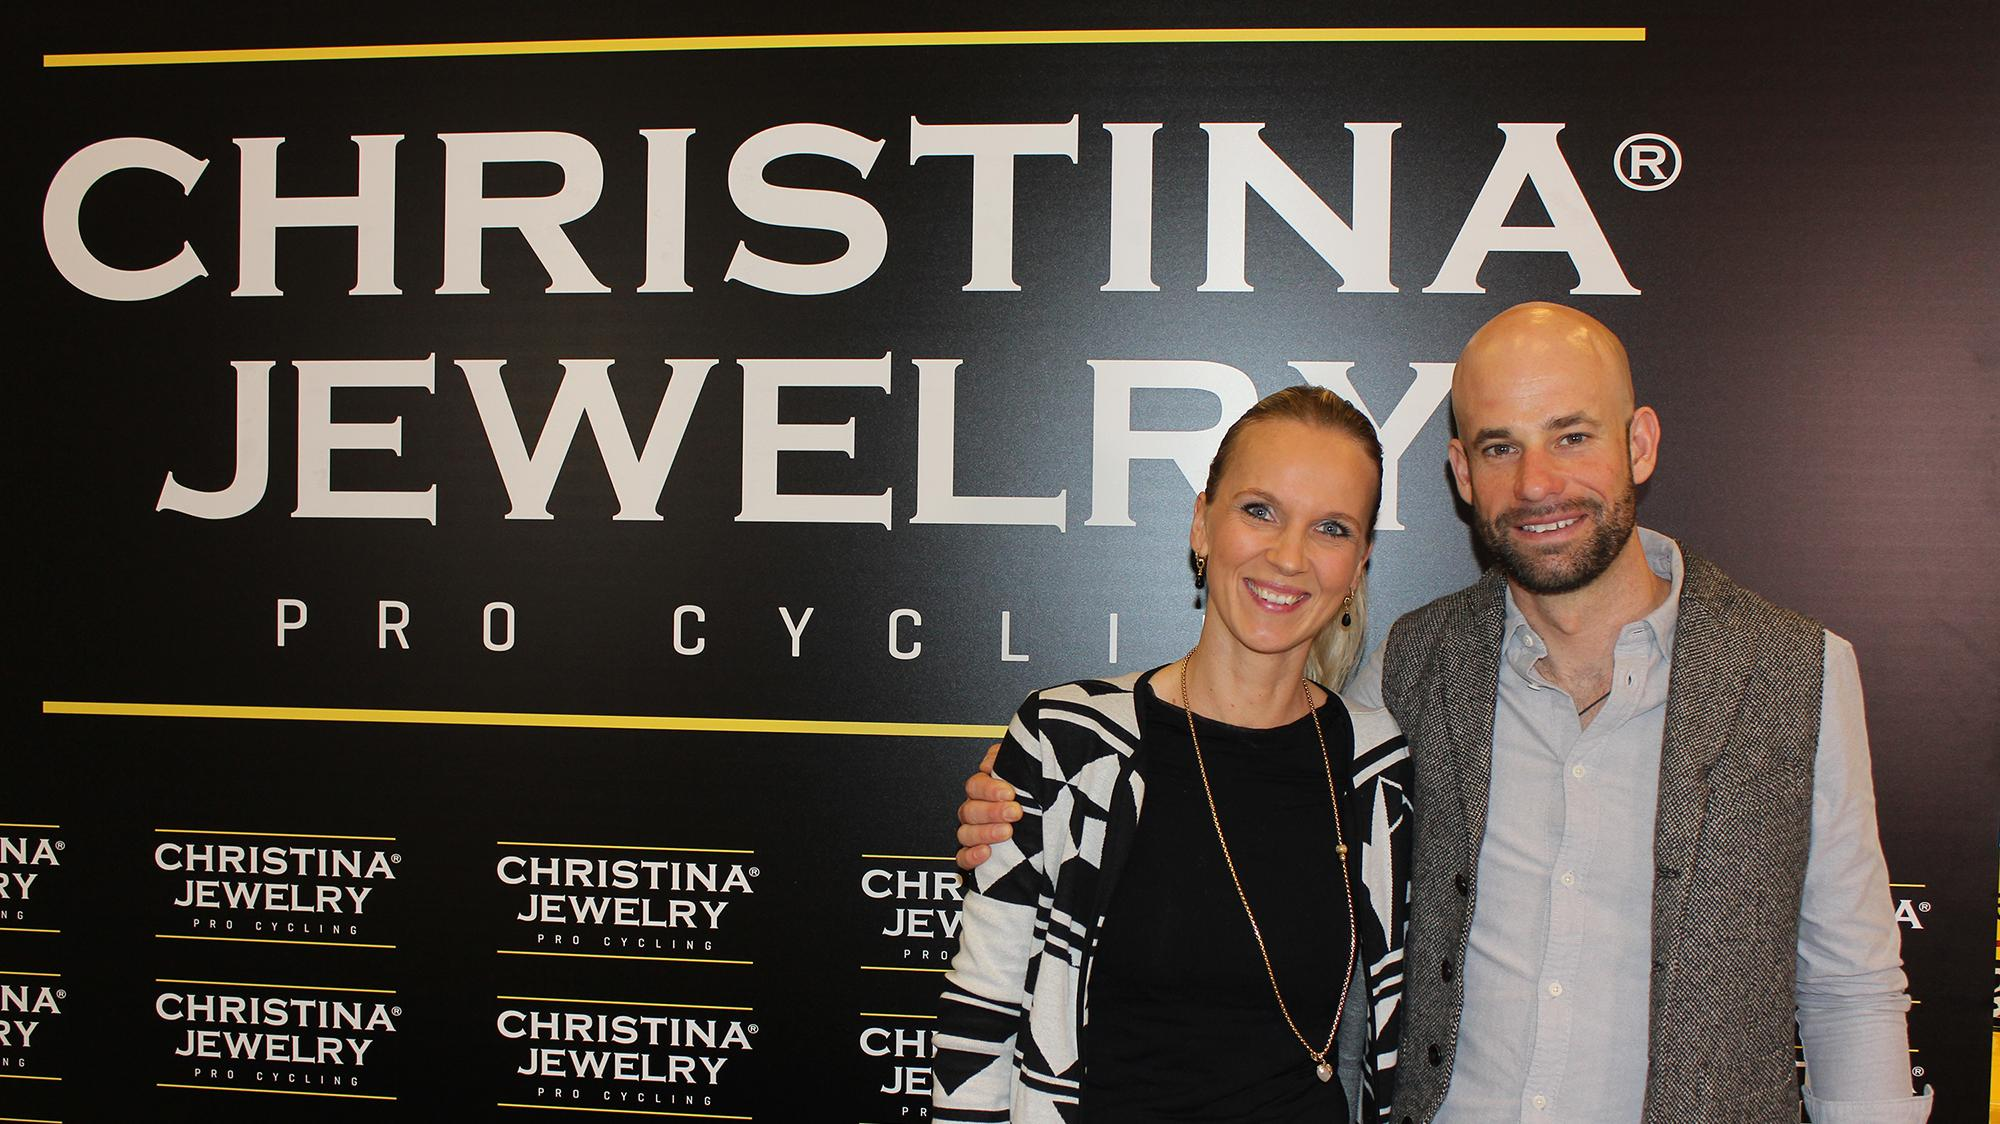 CHRISTINA Jewelry & Watches